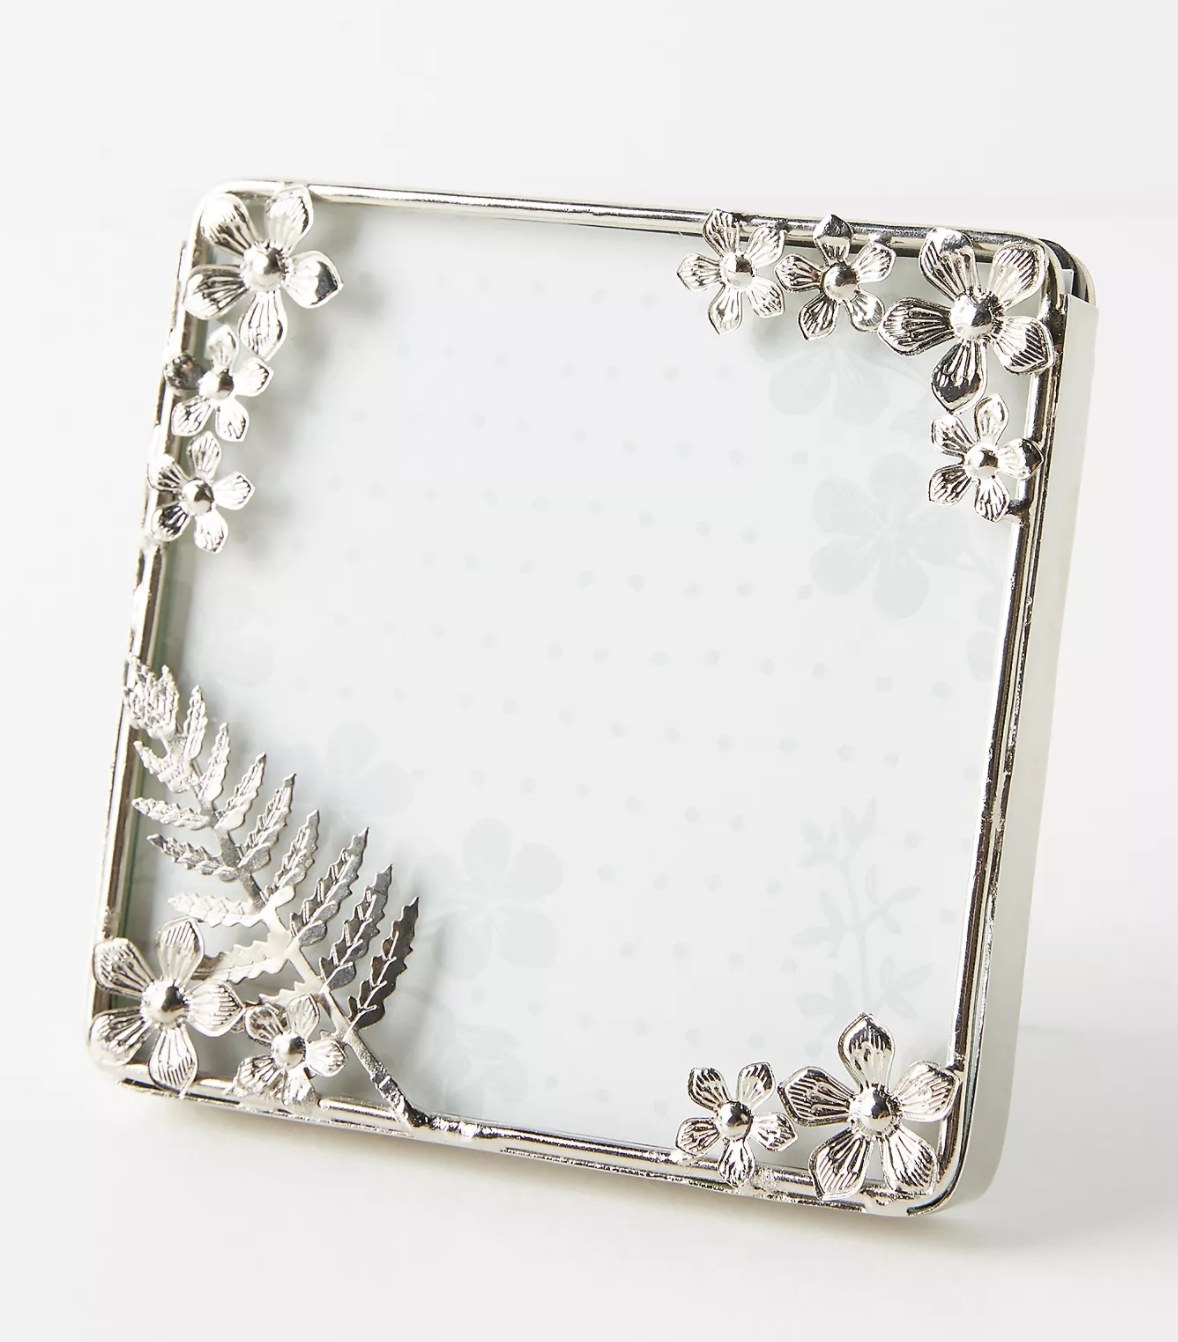 A silver frame with floral decorations